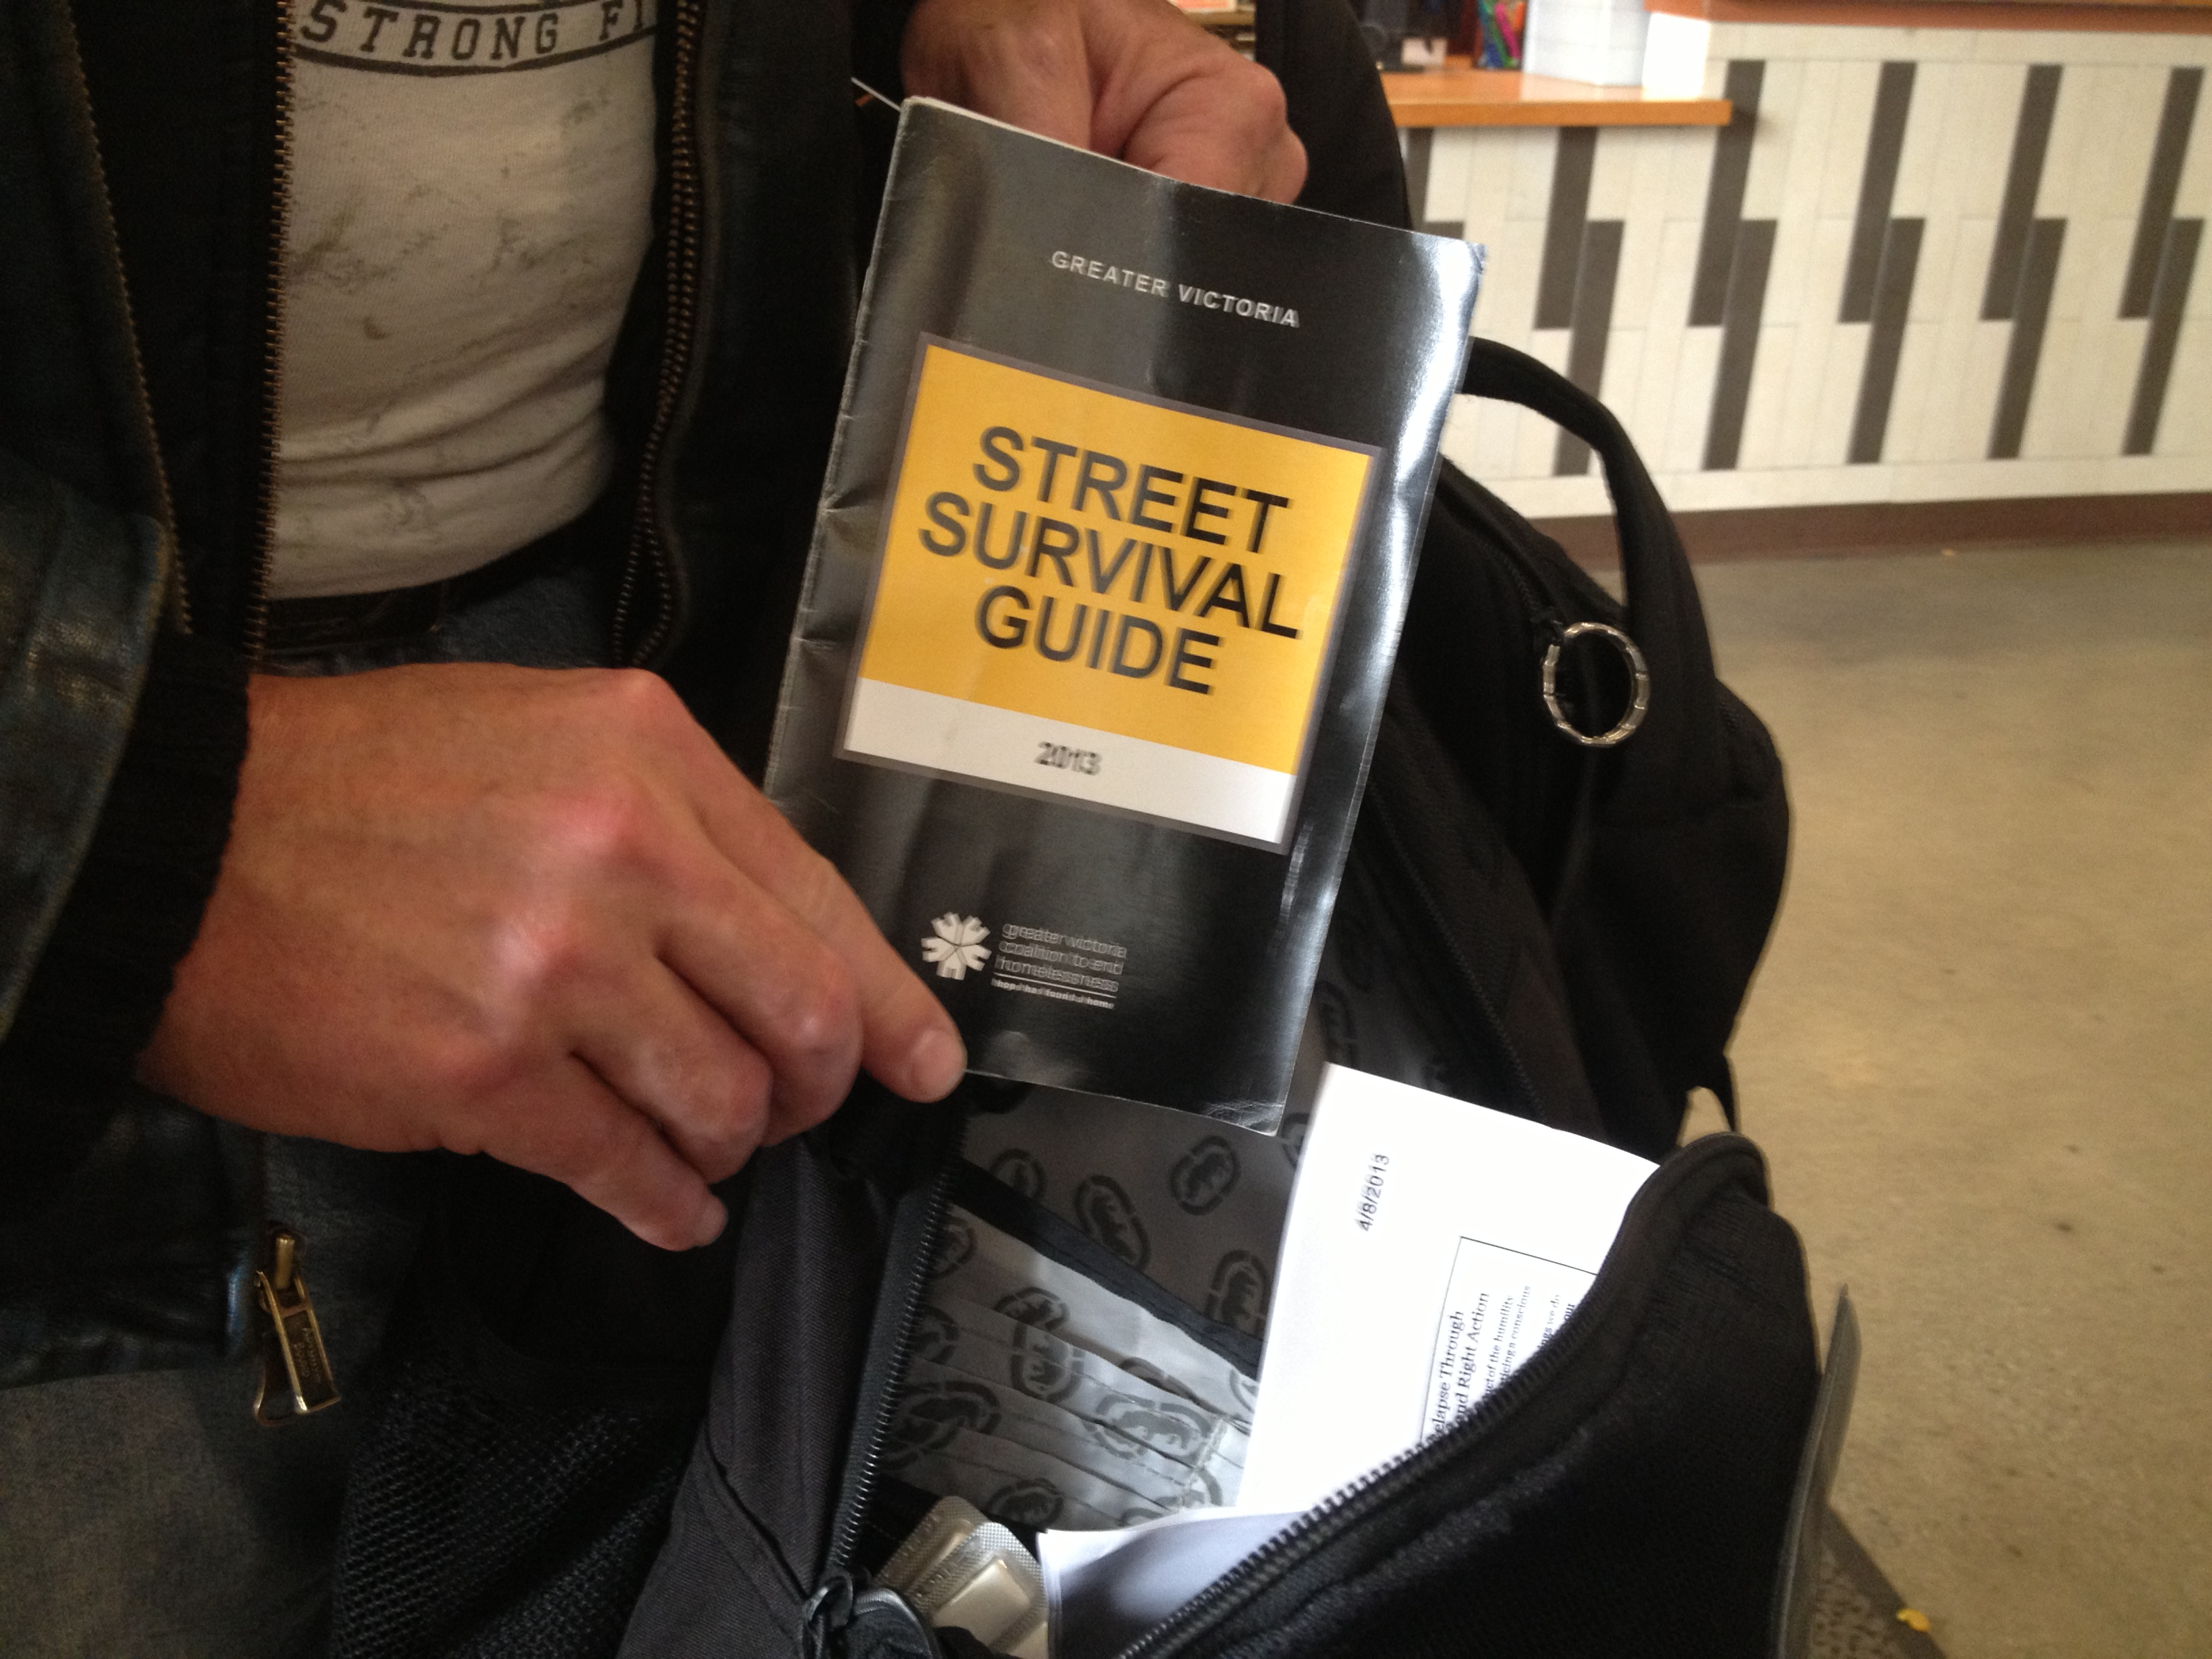 Street Survival Guide